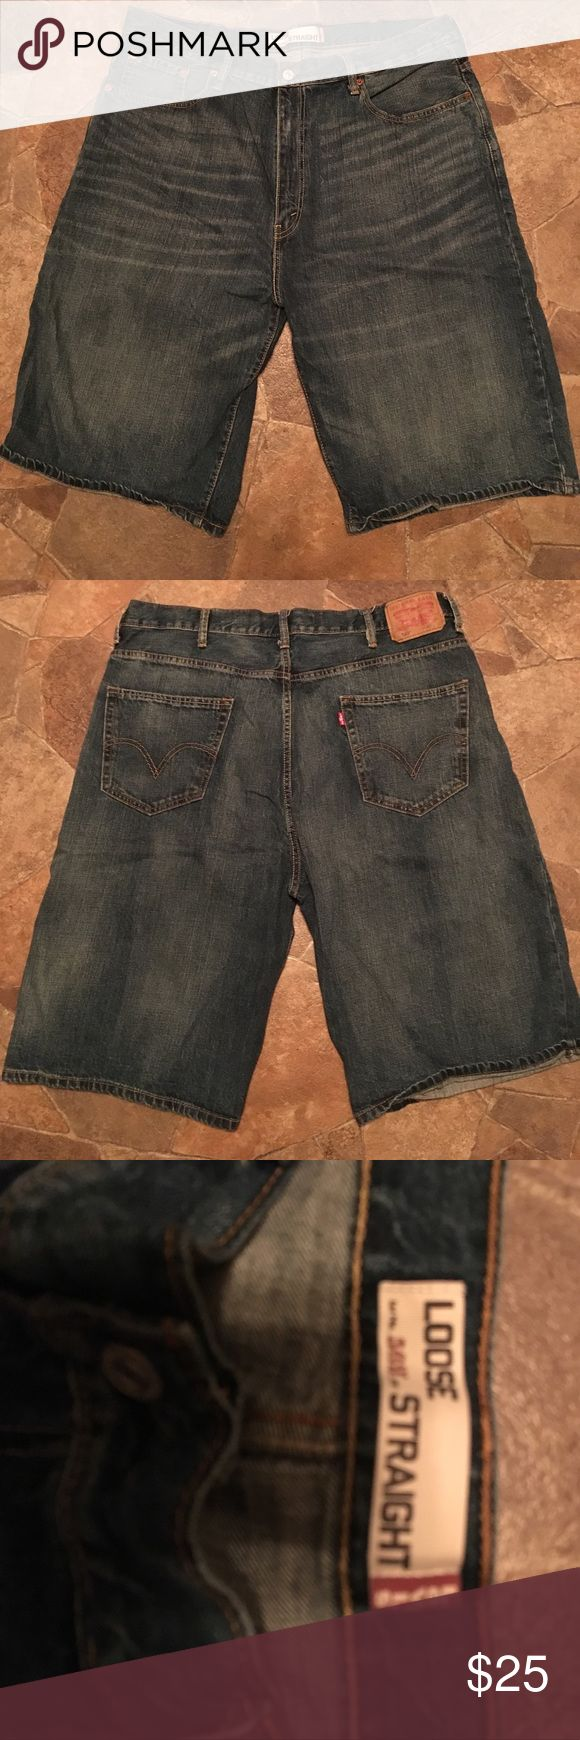 """Levi's 569 Shorts Men's sz 40 Levi's 569 Loose Straight Denim Jean Shorts. Inseam measures 11.5"""". Great preowned condition. Any questions please ask. Thank You 😊 Levi's Shorts Jean Shorts"""